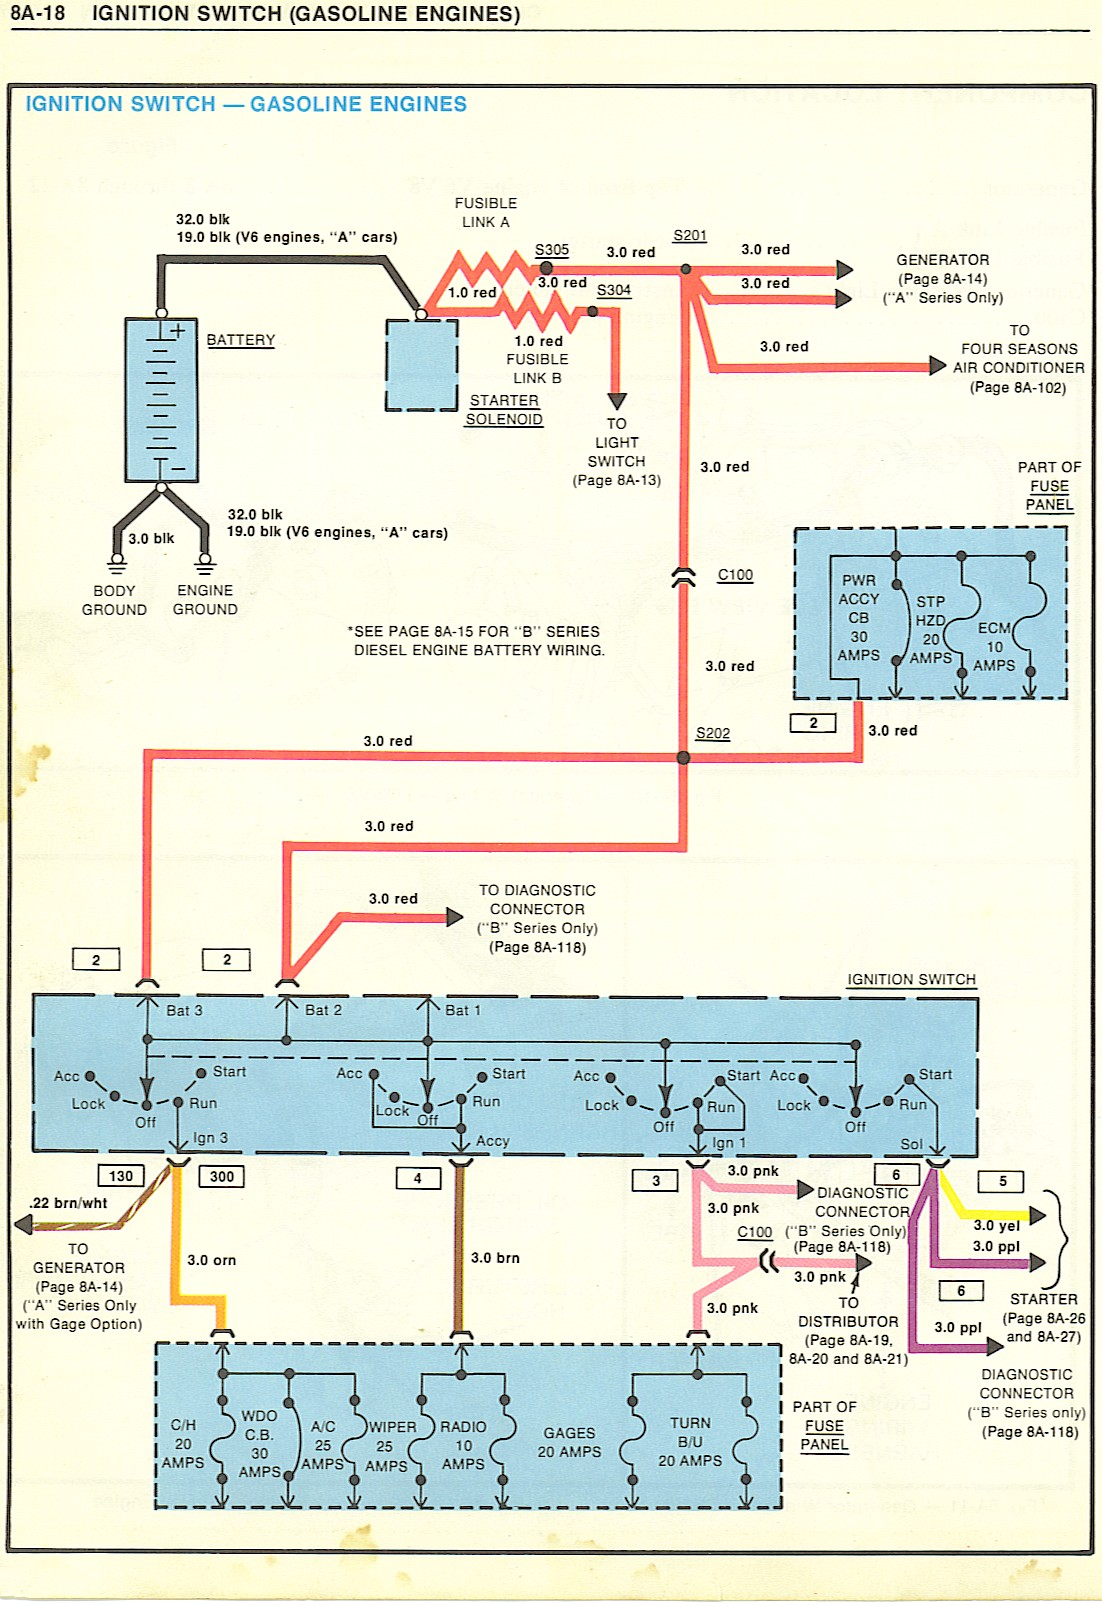 hight resolution of 1984 gm ignition wiring diagram wiring diagram explained rh 11 10 corruptionincoal org gm delco remy hei distributor wiring diagram chevy hei distributor